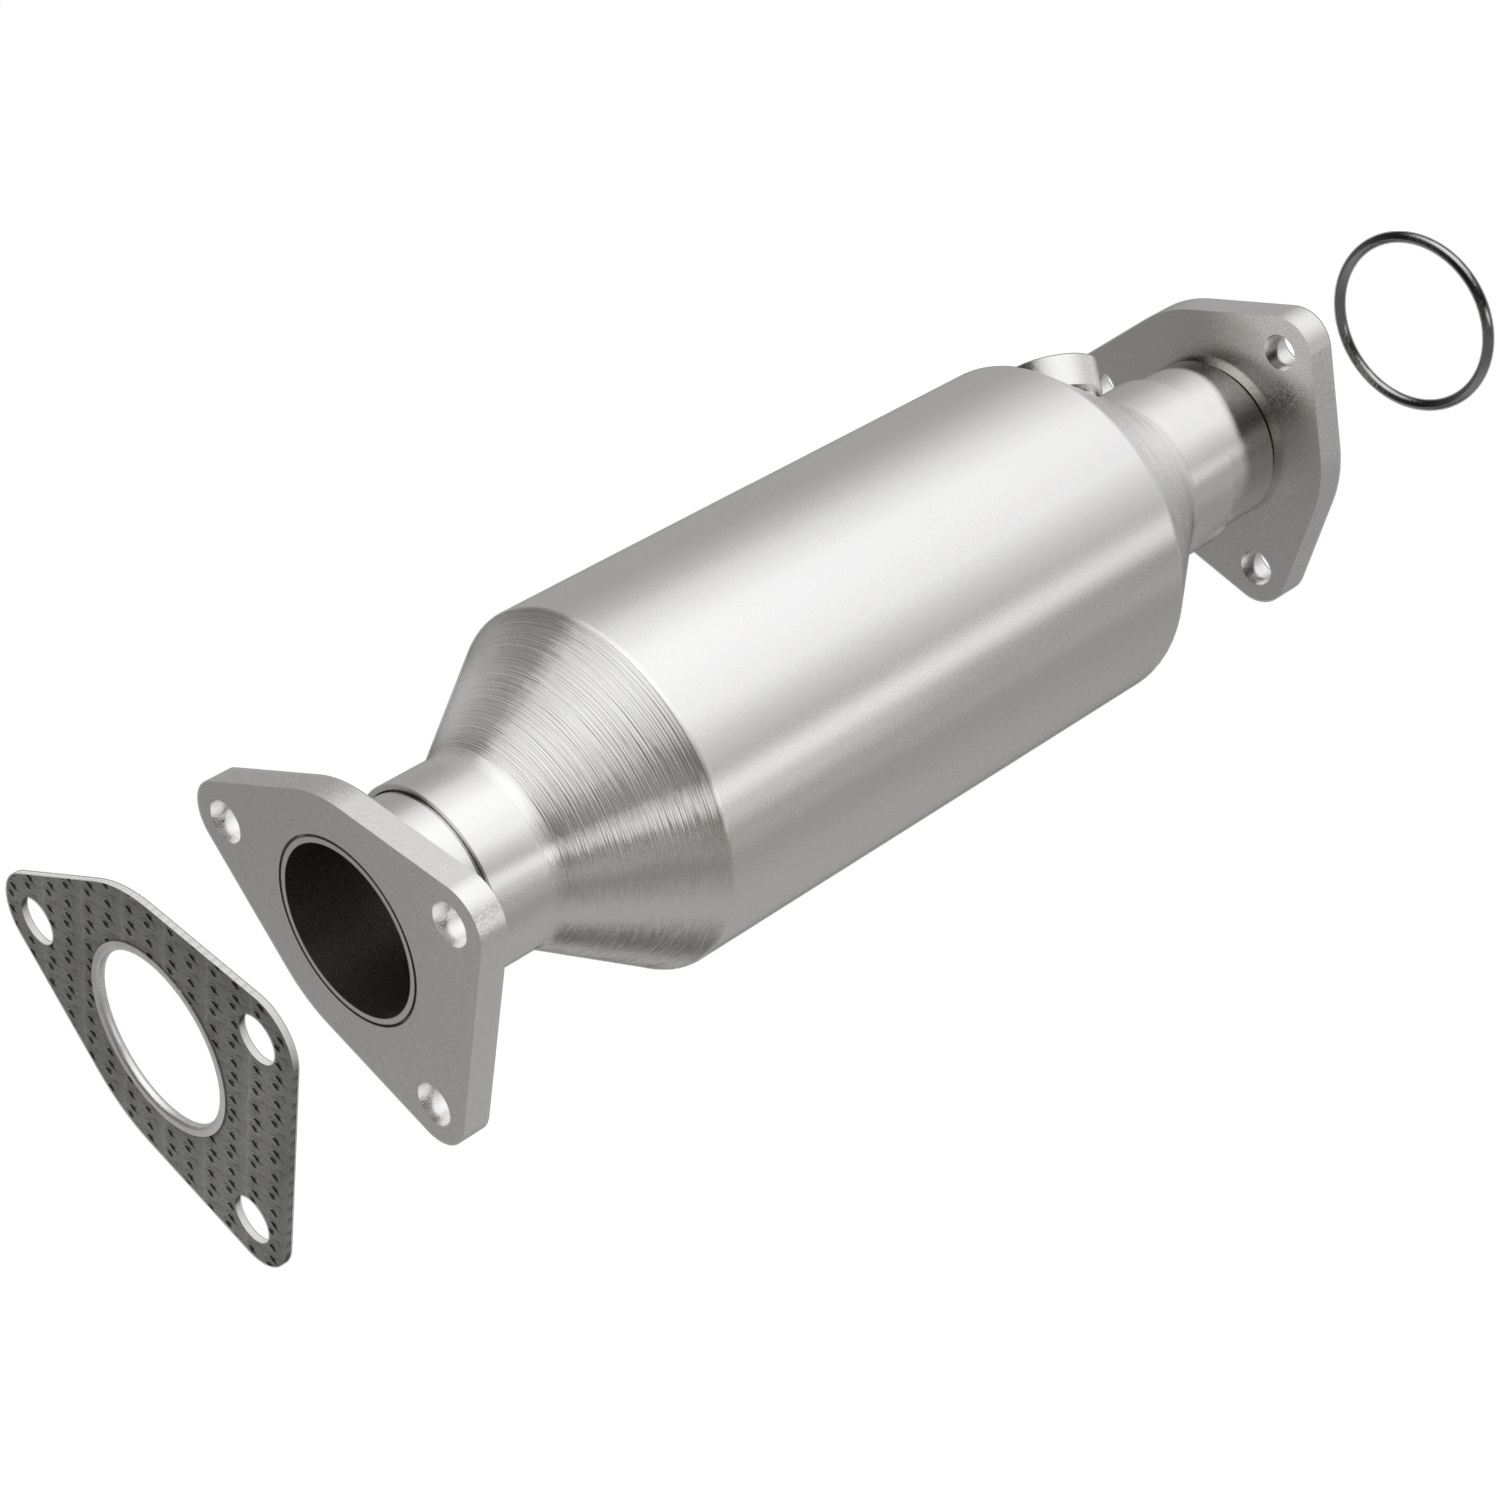 magnaflow-49-state-converter-22644-direct-fit-catalytic-converter-fits-prelude